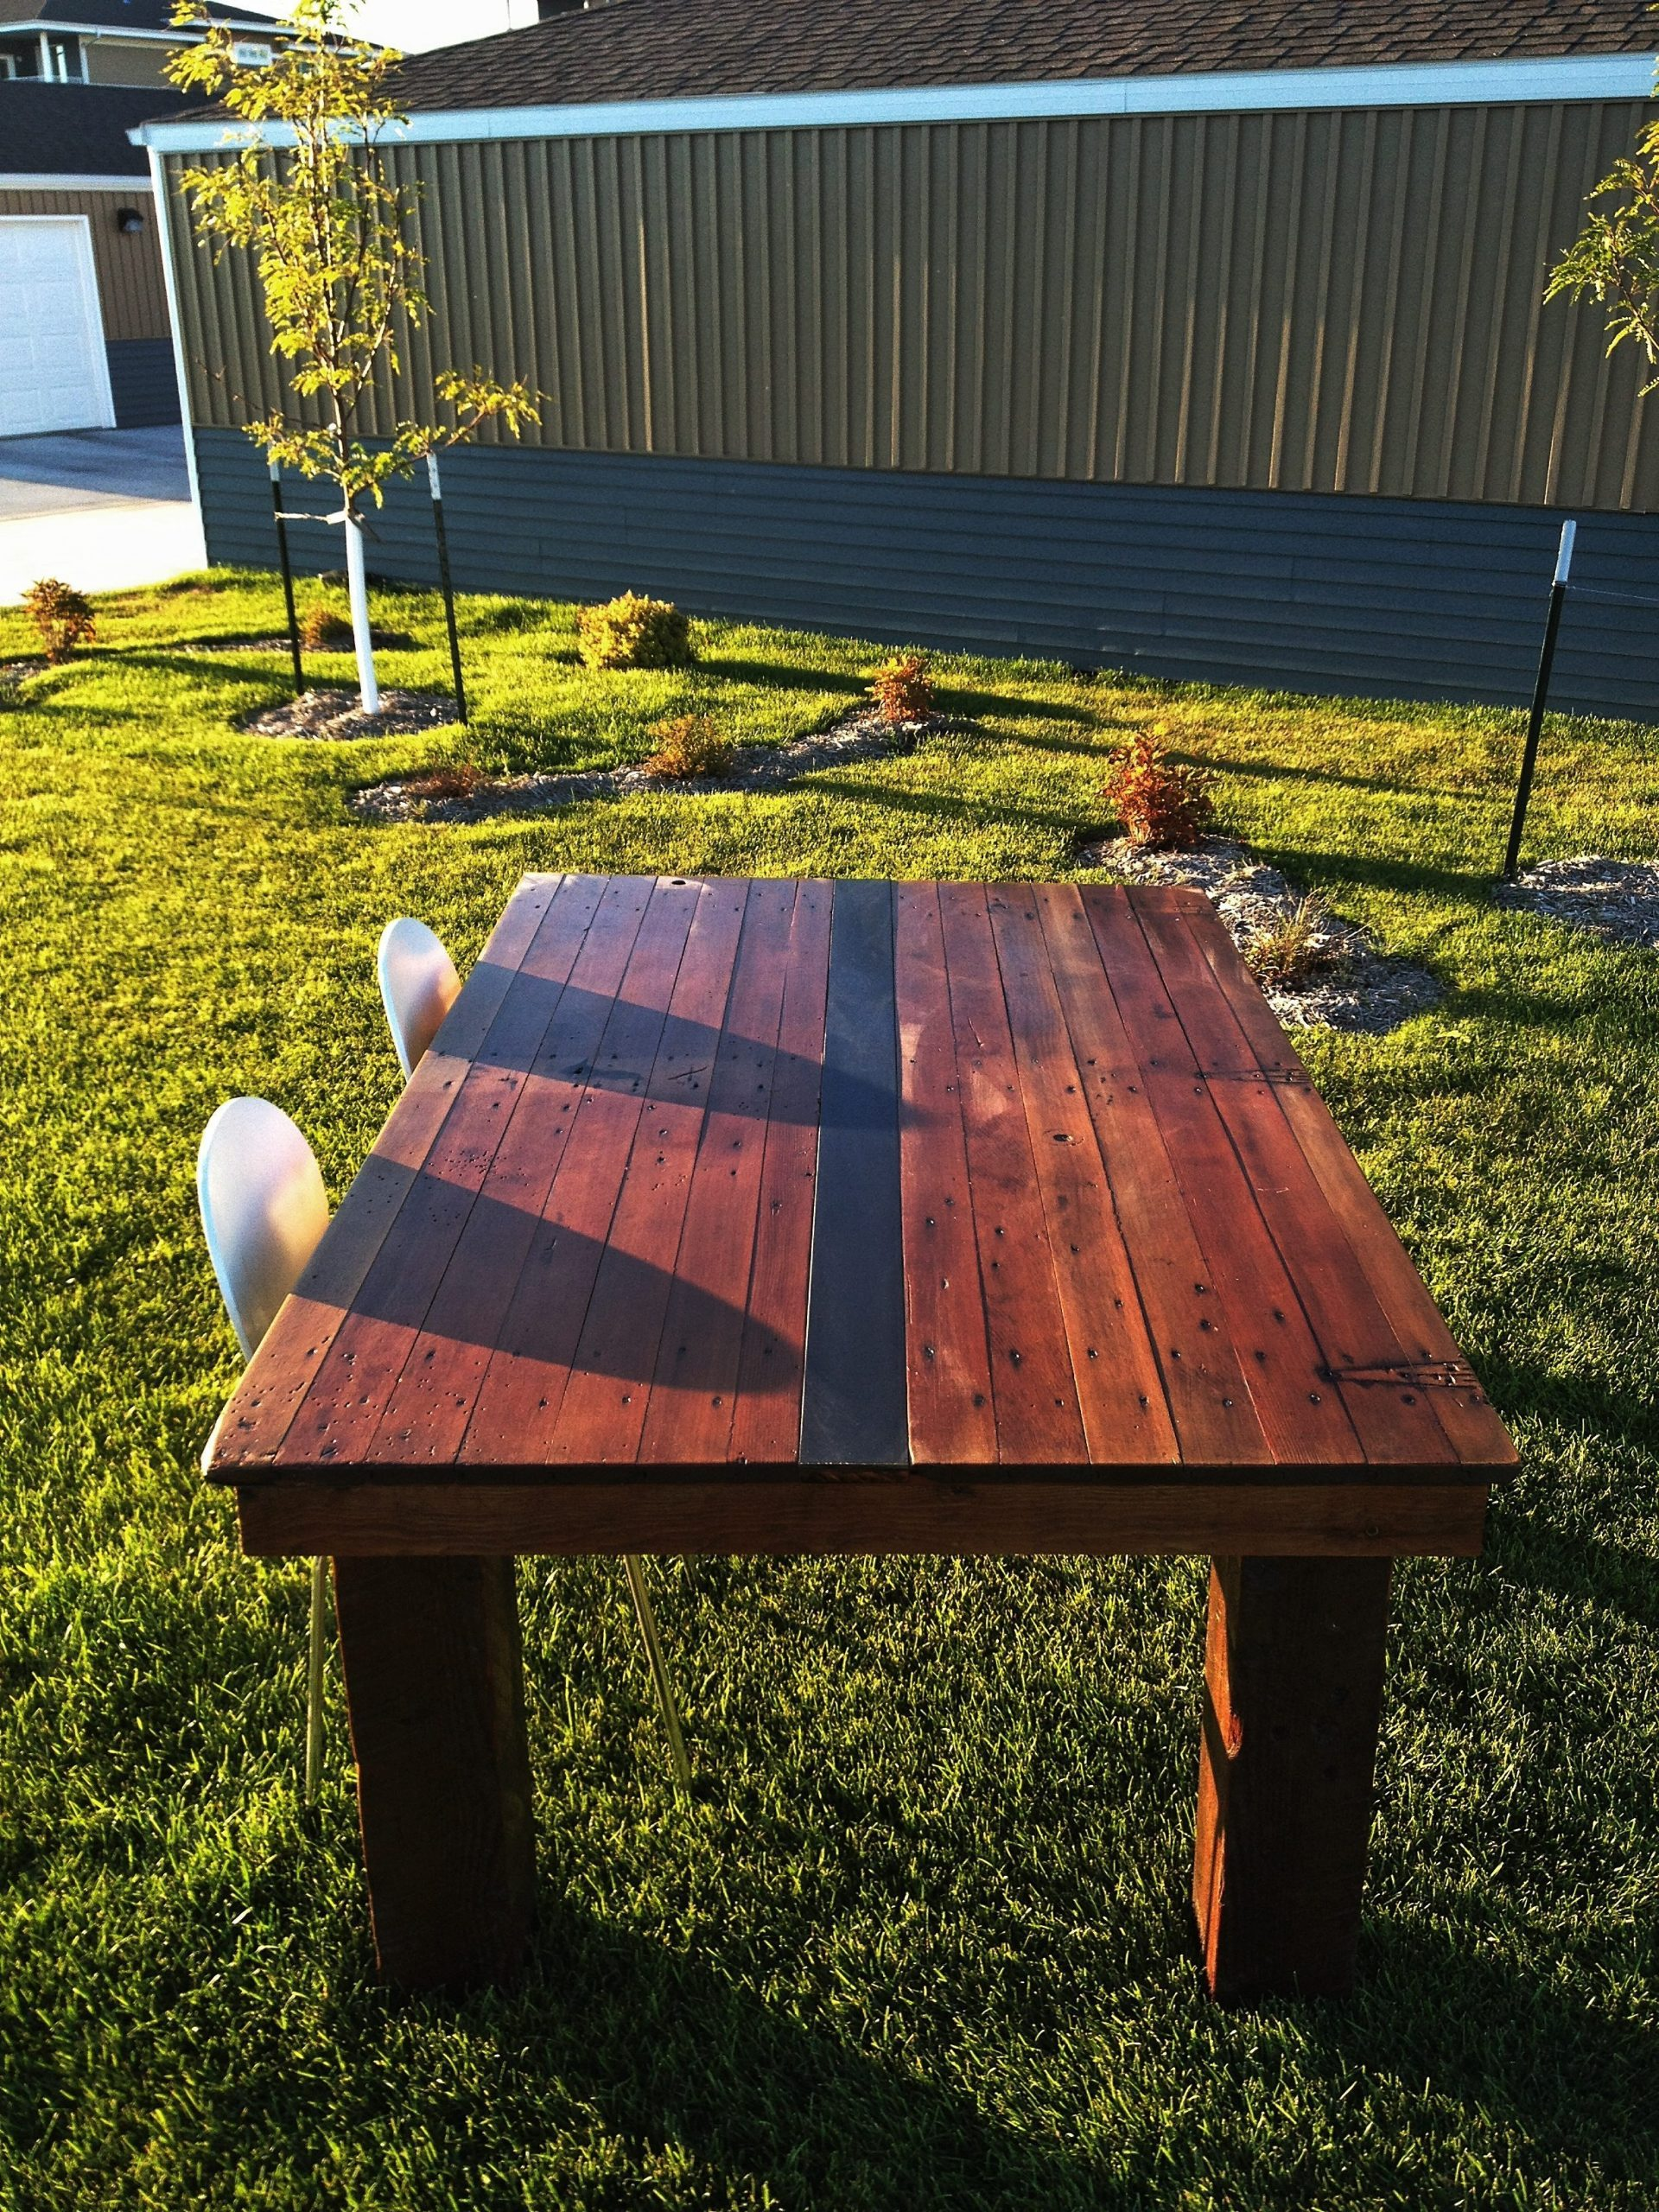 If This Table Could Talk…